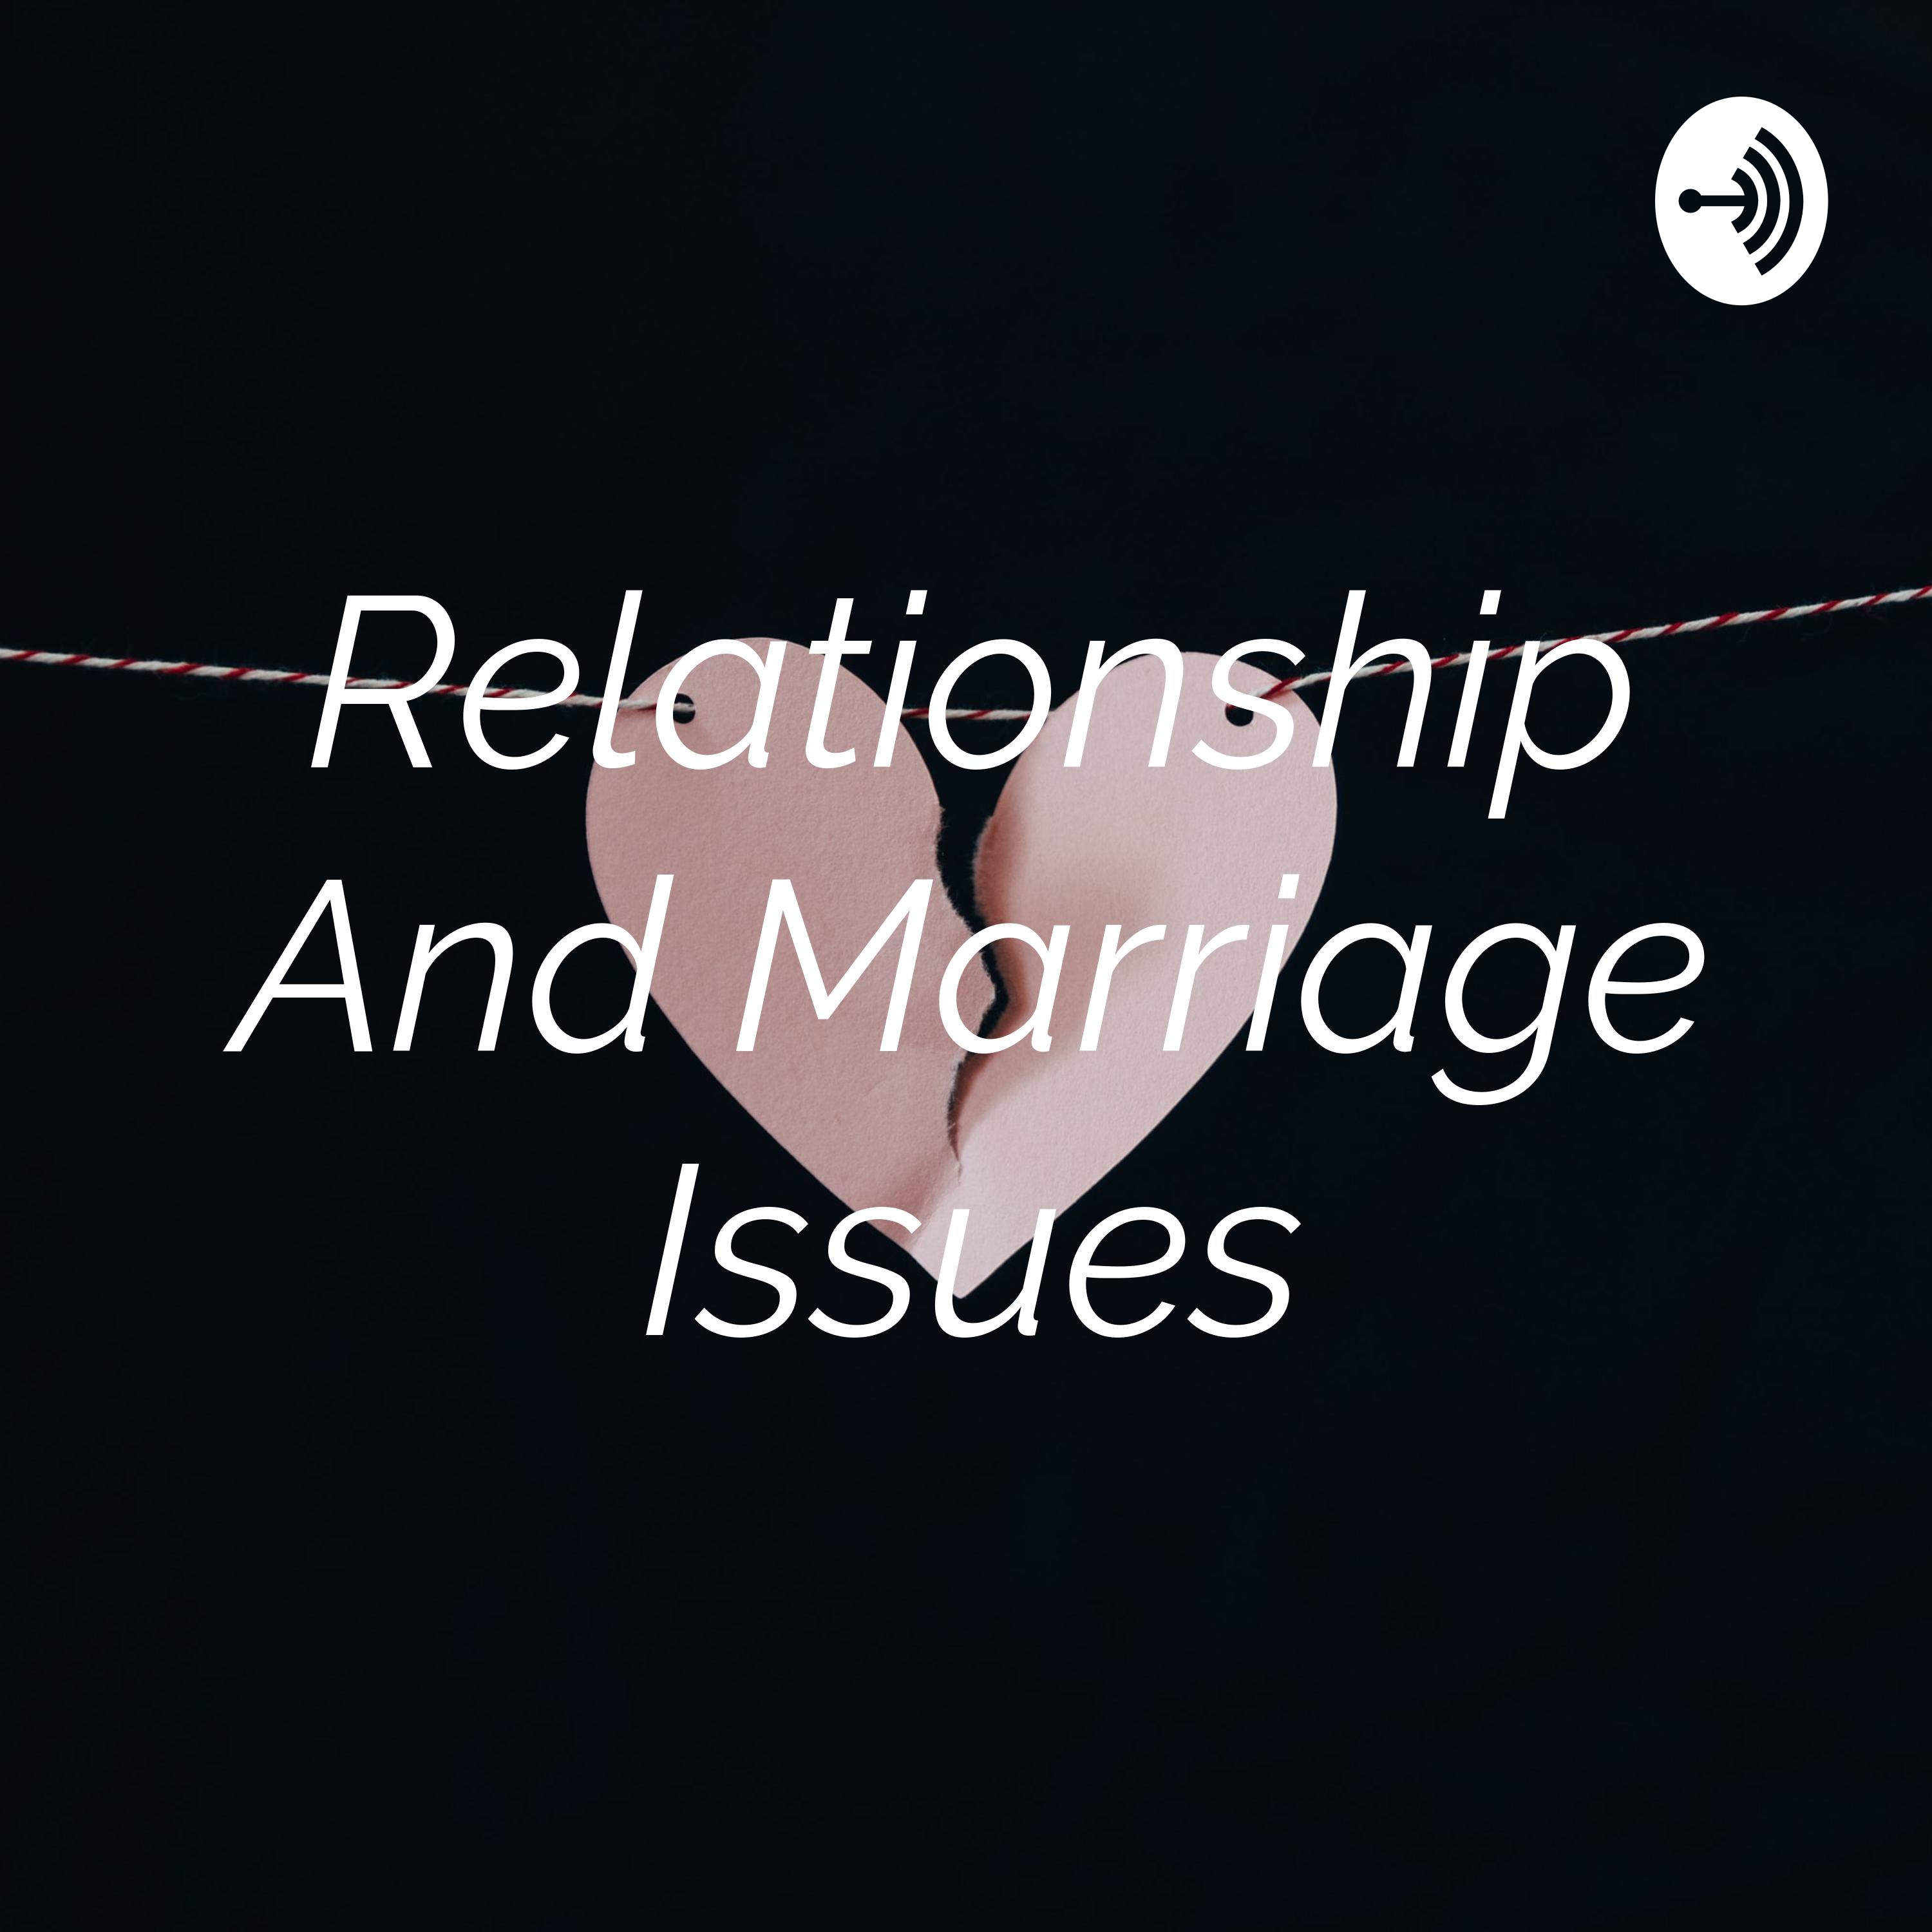 Relationship And Marriage Issues